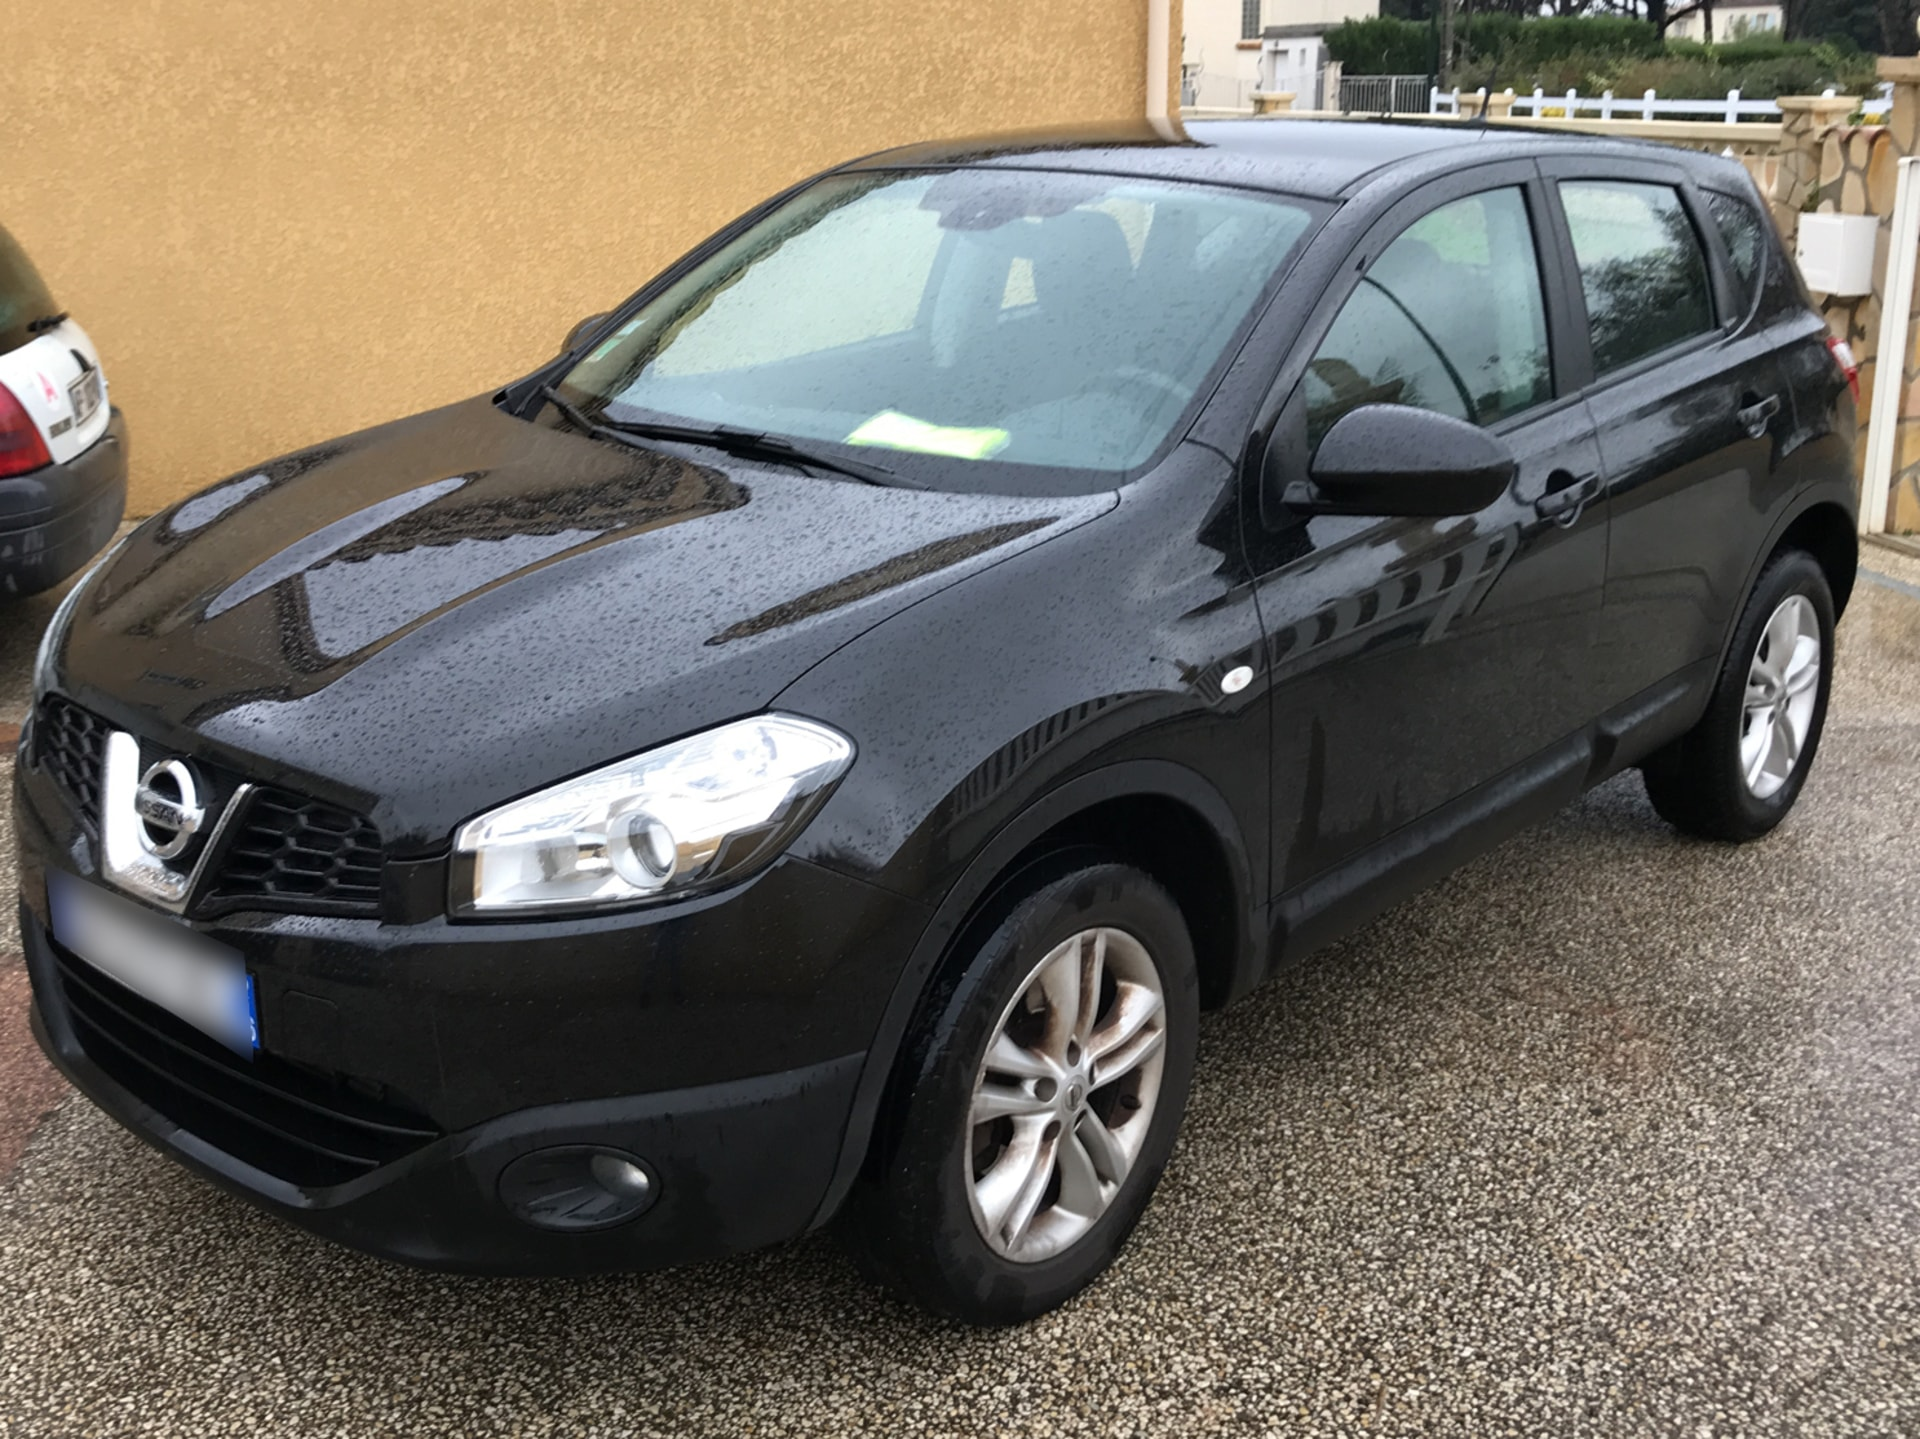 NISSAN QASHQAI 1.6 DCI 130 CONNECT EDITION 2WD - Carverntura